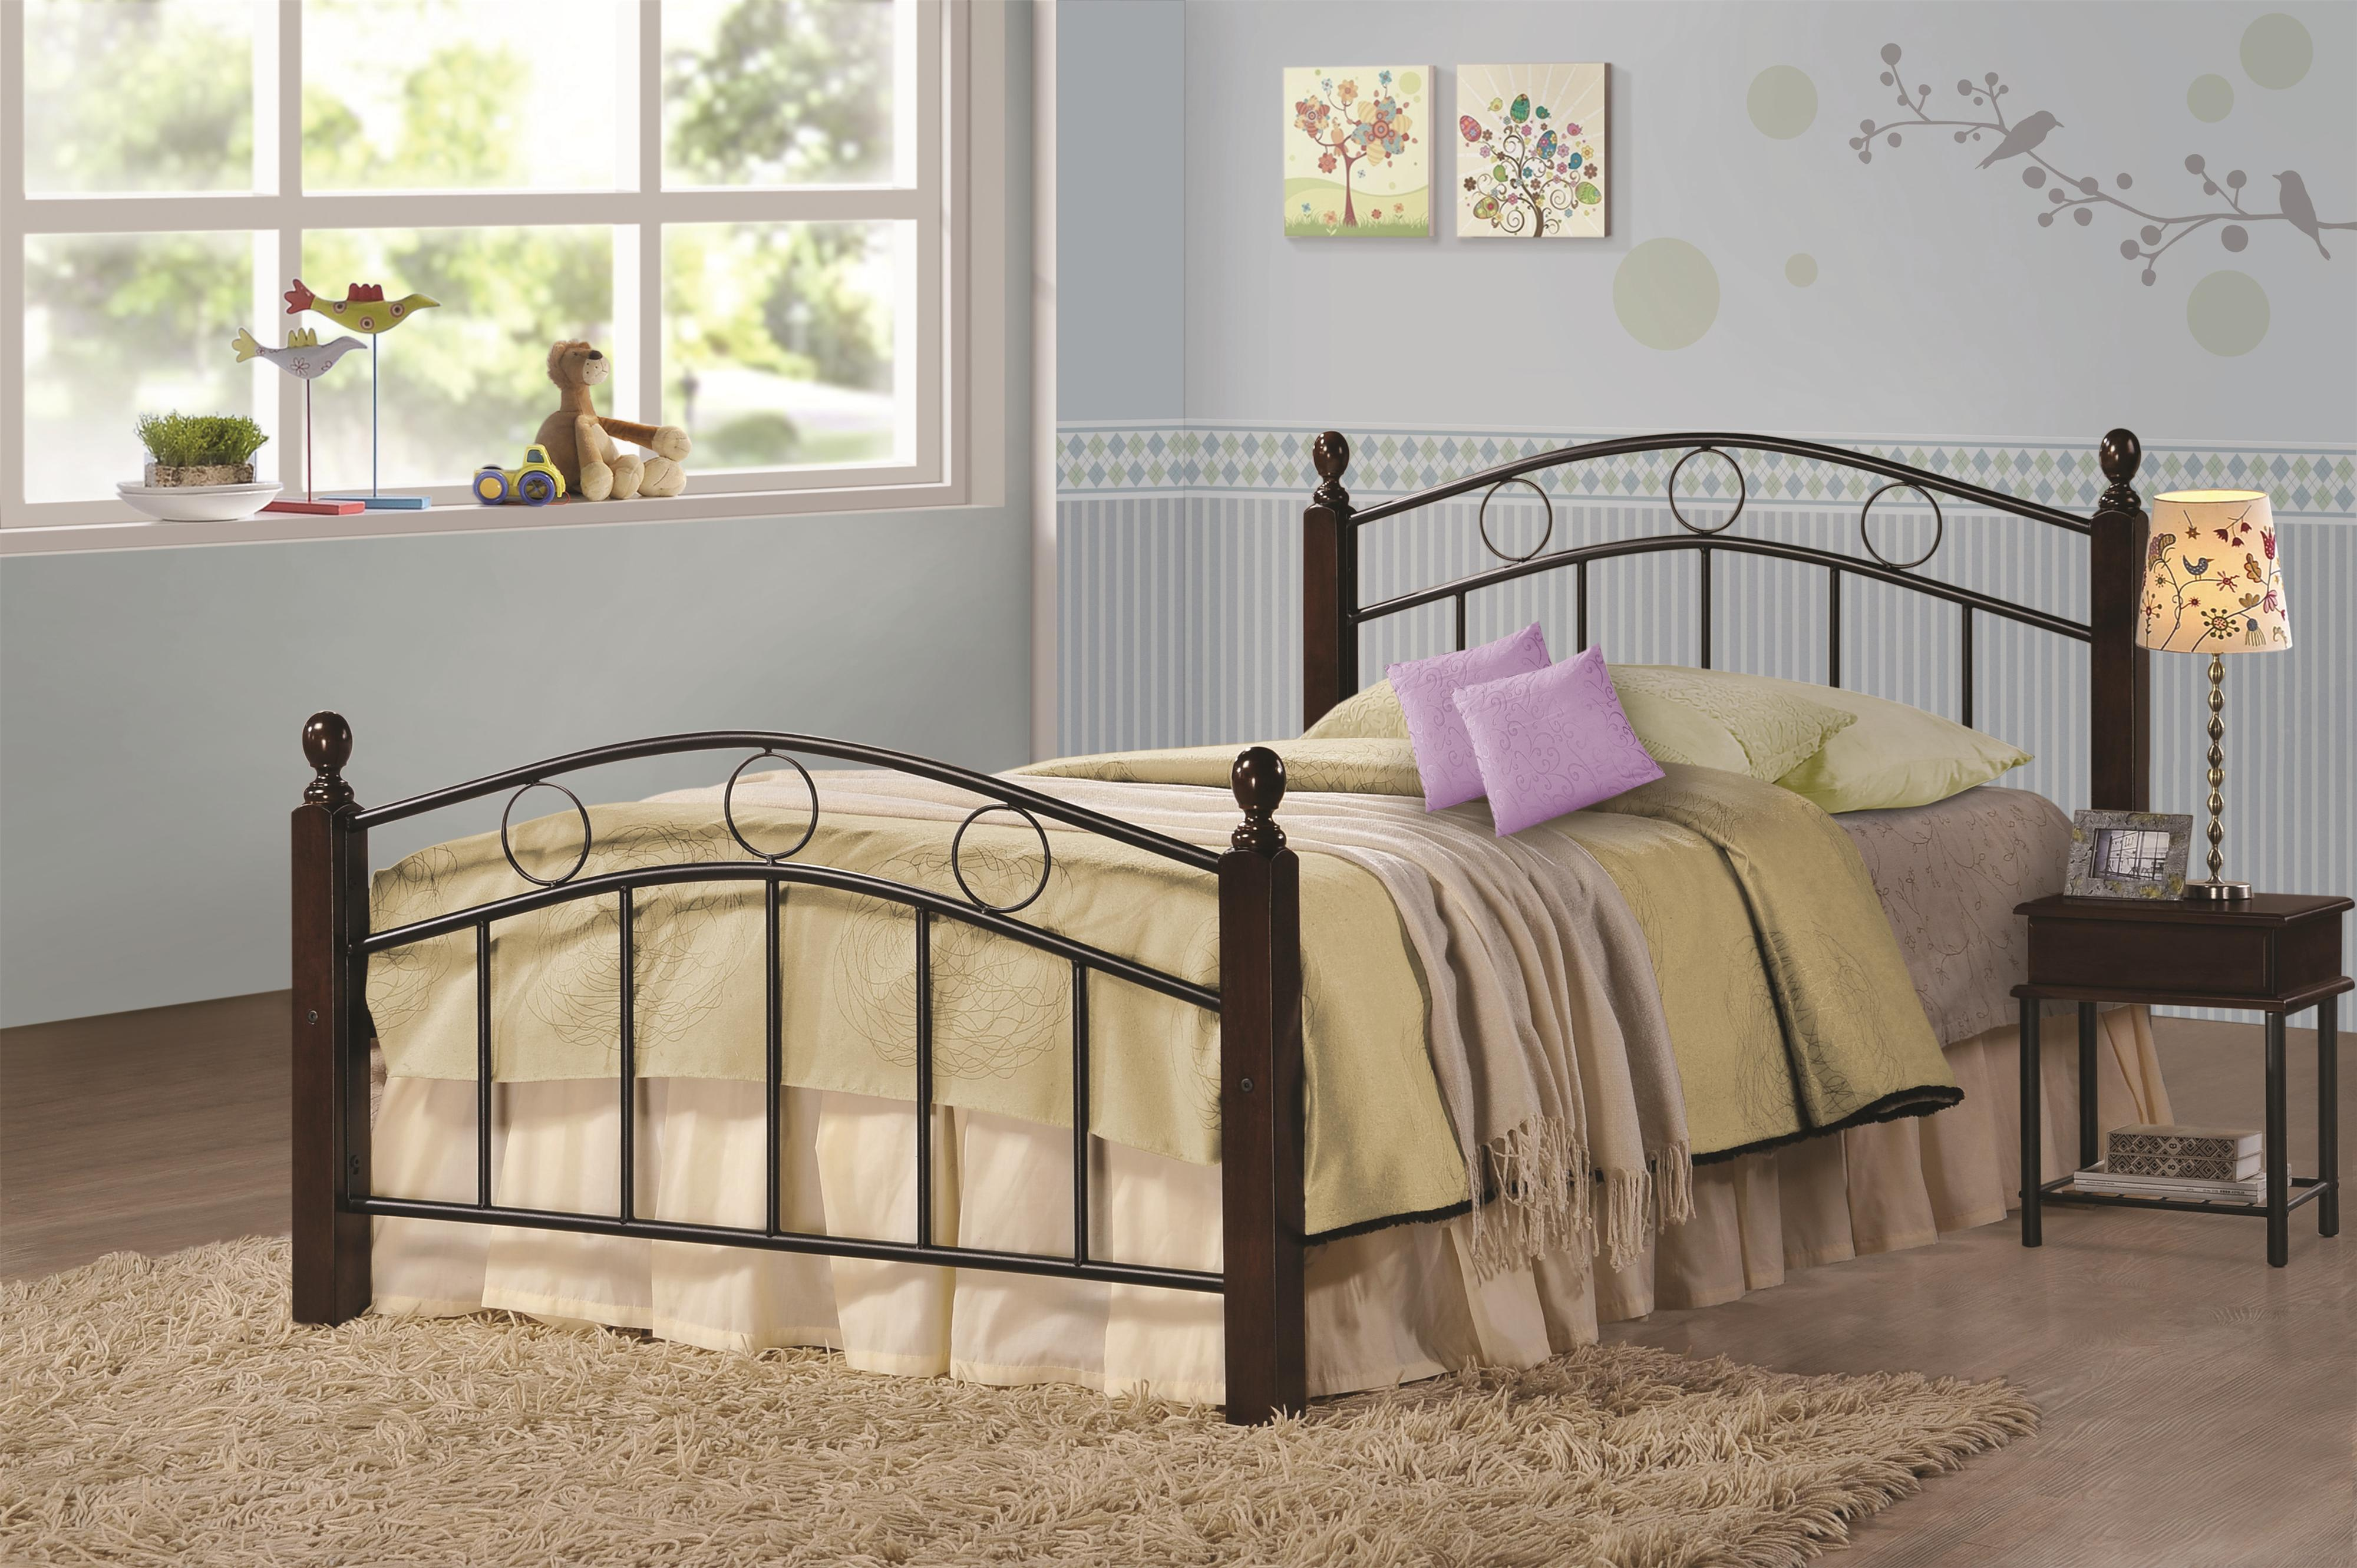 mattress metal platform headboards melbourne canada bed prices australia cheap for brass queen beds storage of flynn with furniture frame full headboard king size frames new wood and sale upholstered set grey twin